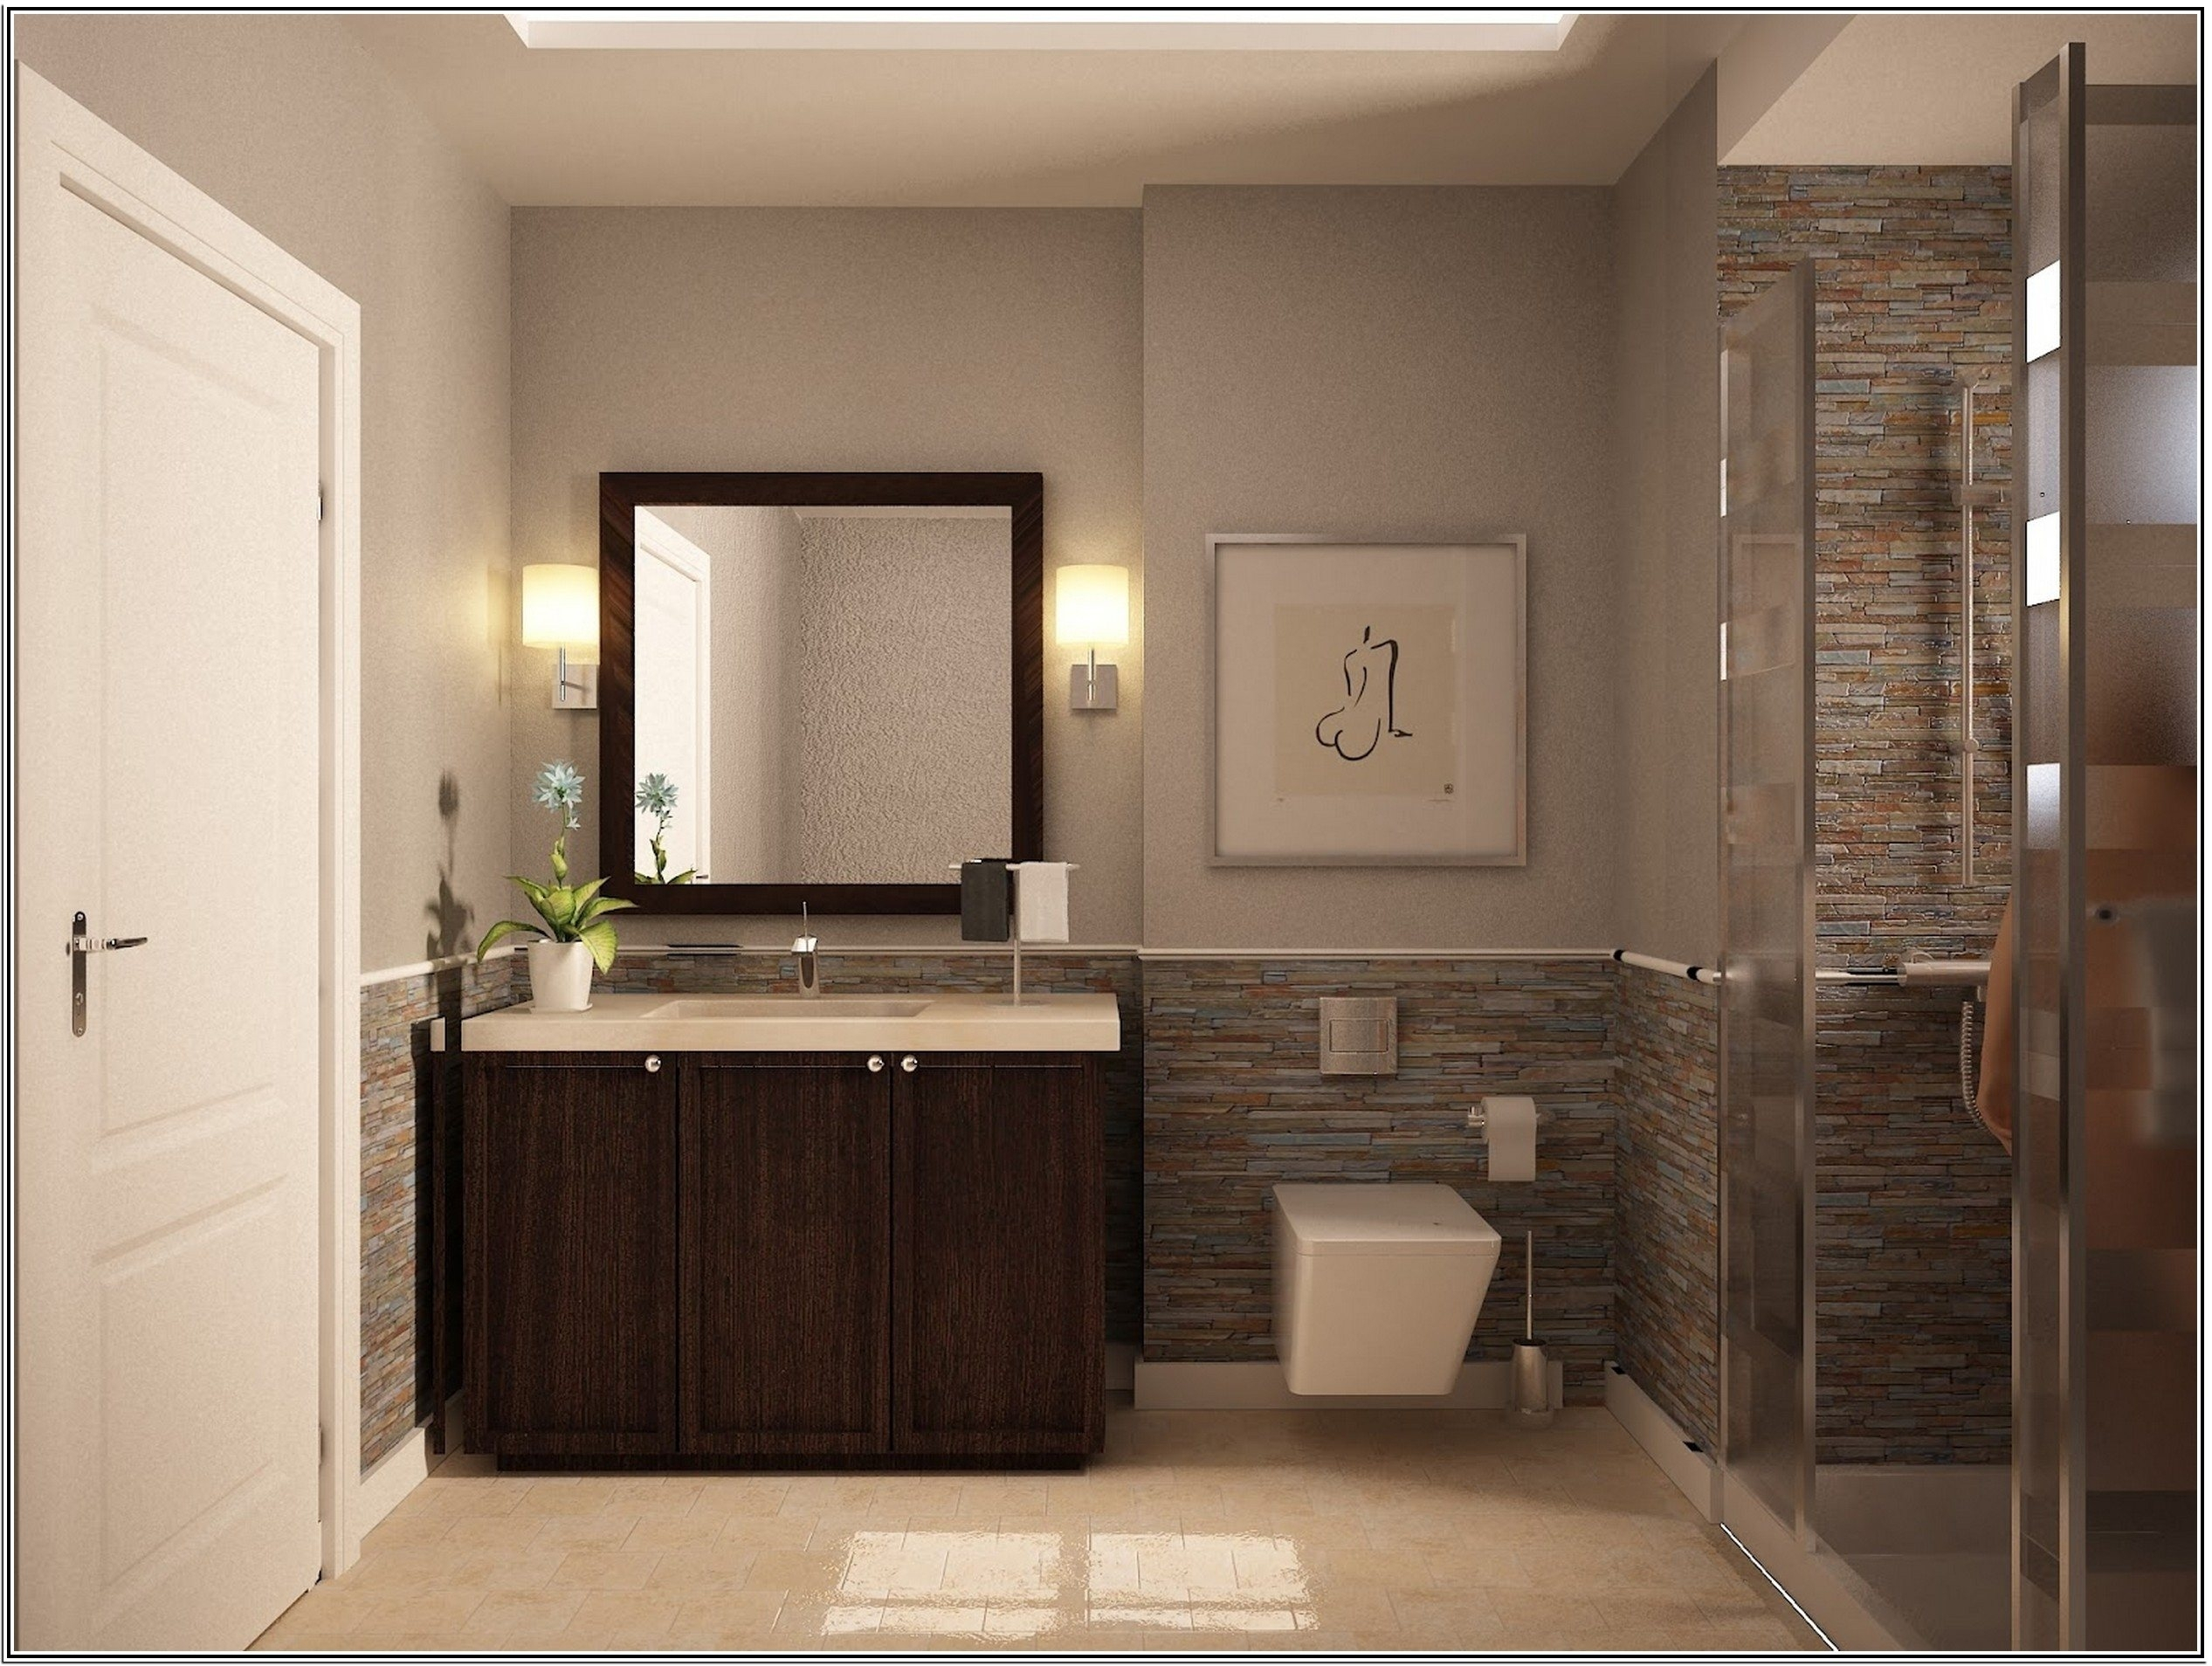 Glamorous Small Bathroom : Elegant Small Bathroom Paint Color Ideas Dark throughout New Small Bathroom Paint Ideas